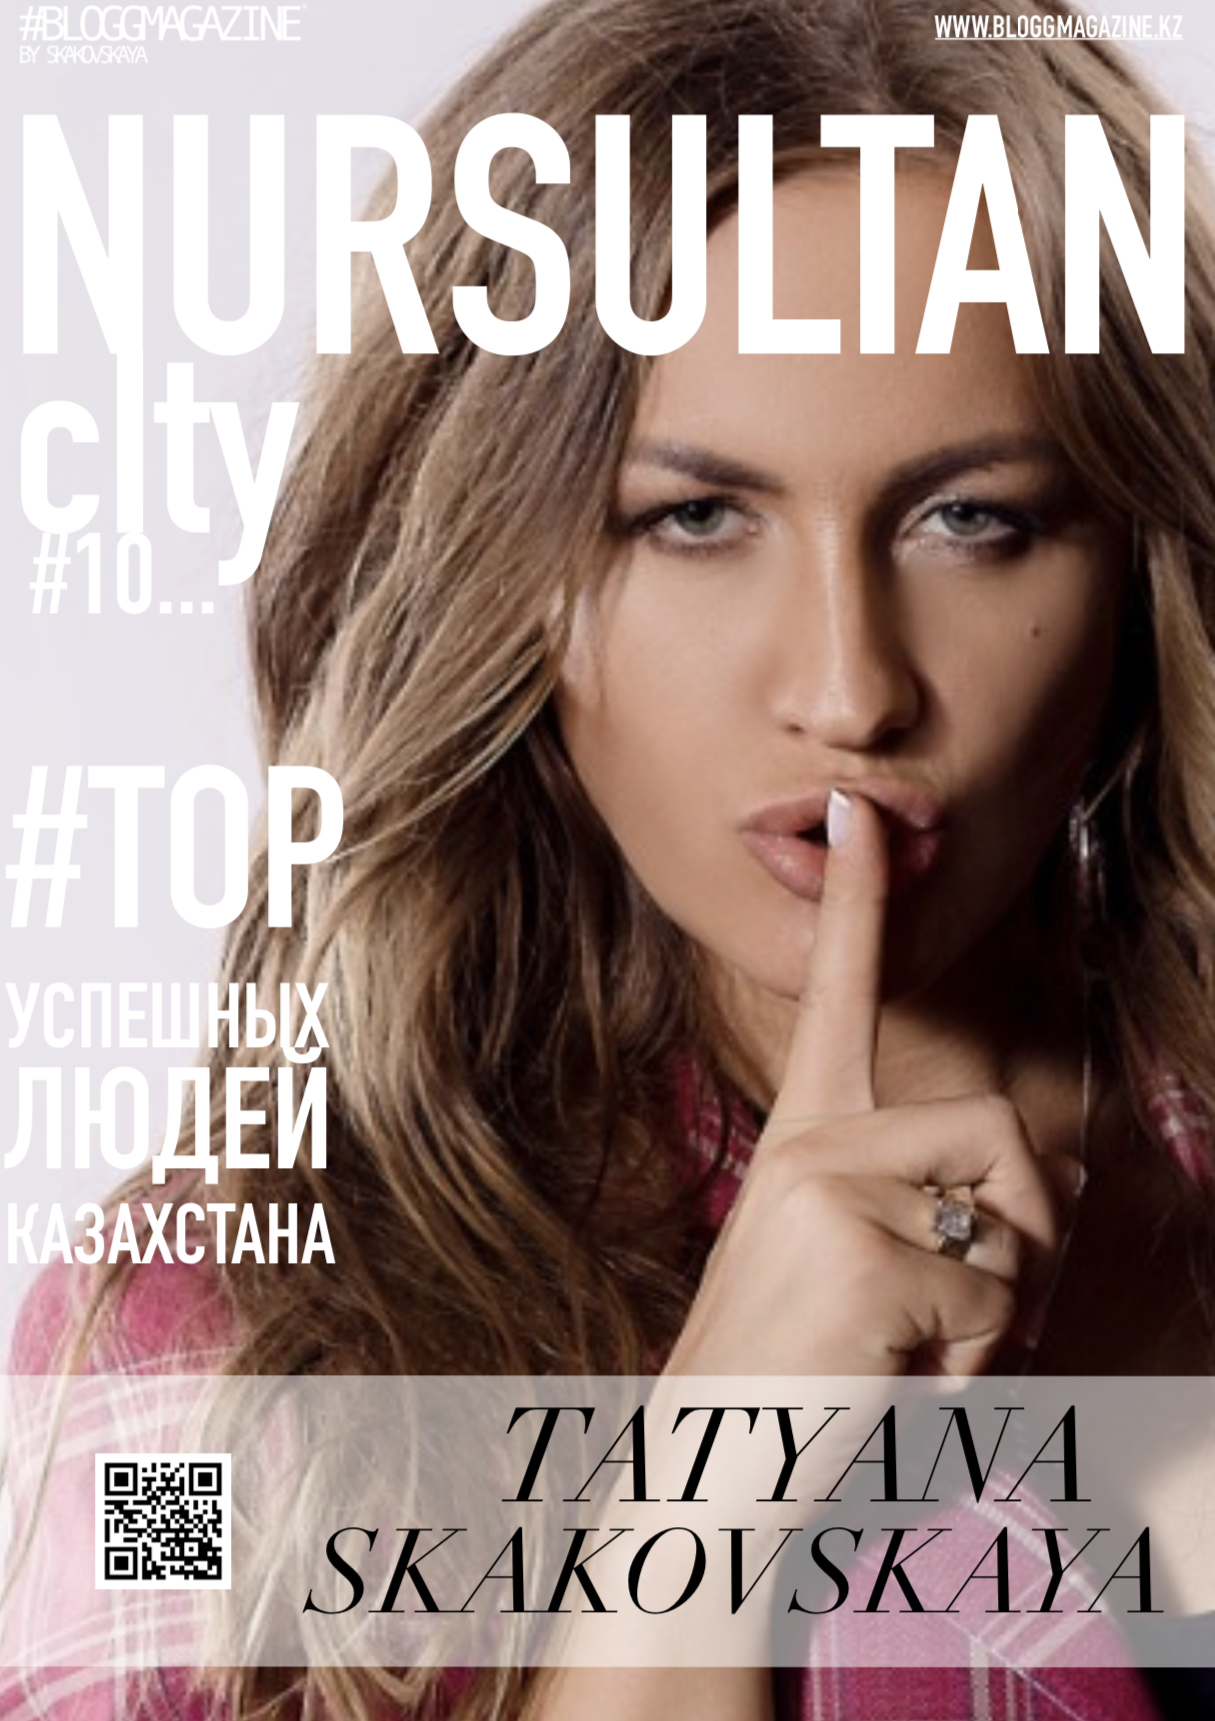 10 NURSULTAN city, #BLOGGMAGAZINE